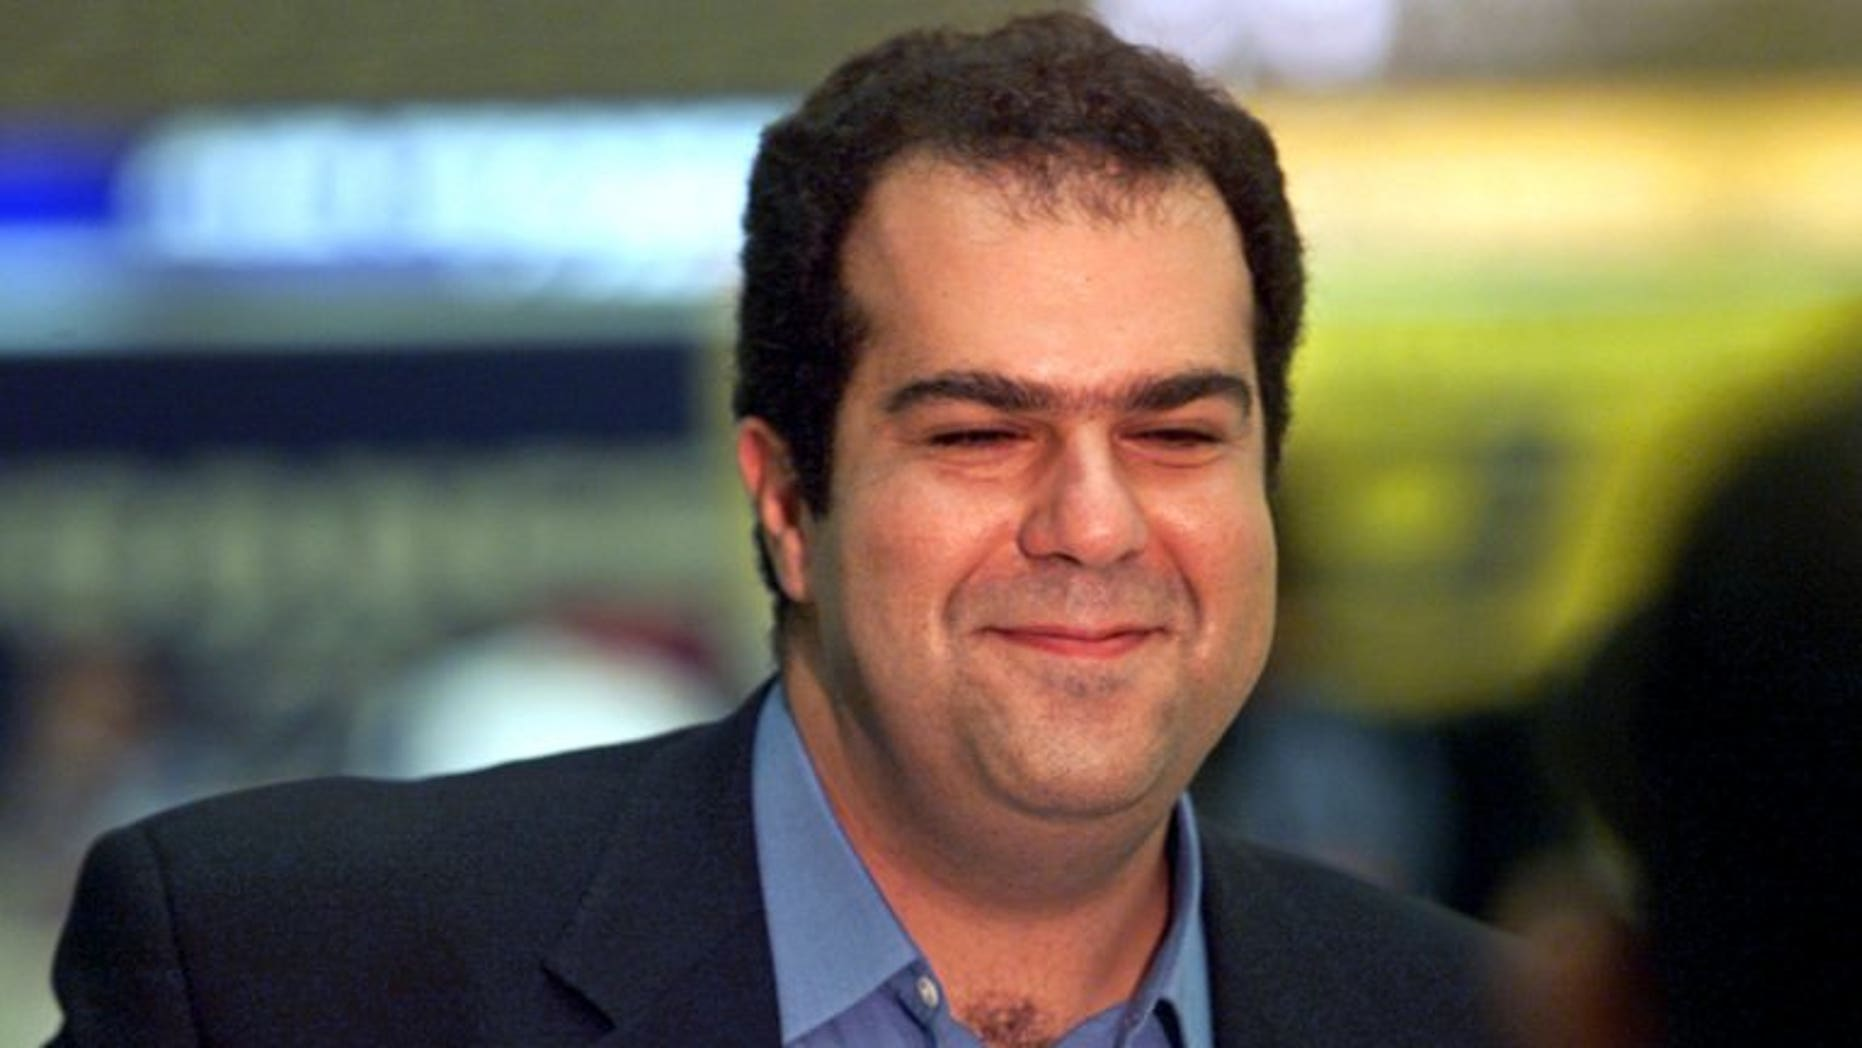 EasyJet tycoon Stelios Haji-Ioannou smiles while waiting to board a flight from Athens to London on September 19, 2000. The easyGroup announced its entry into the food retailing business after the company unveiled plans for a pilot store in London.